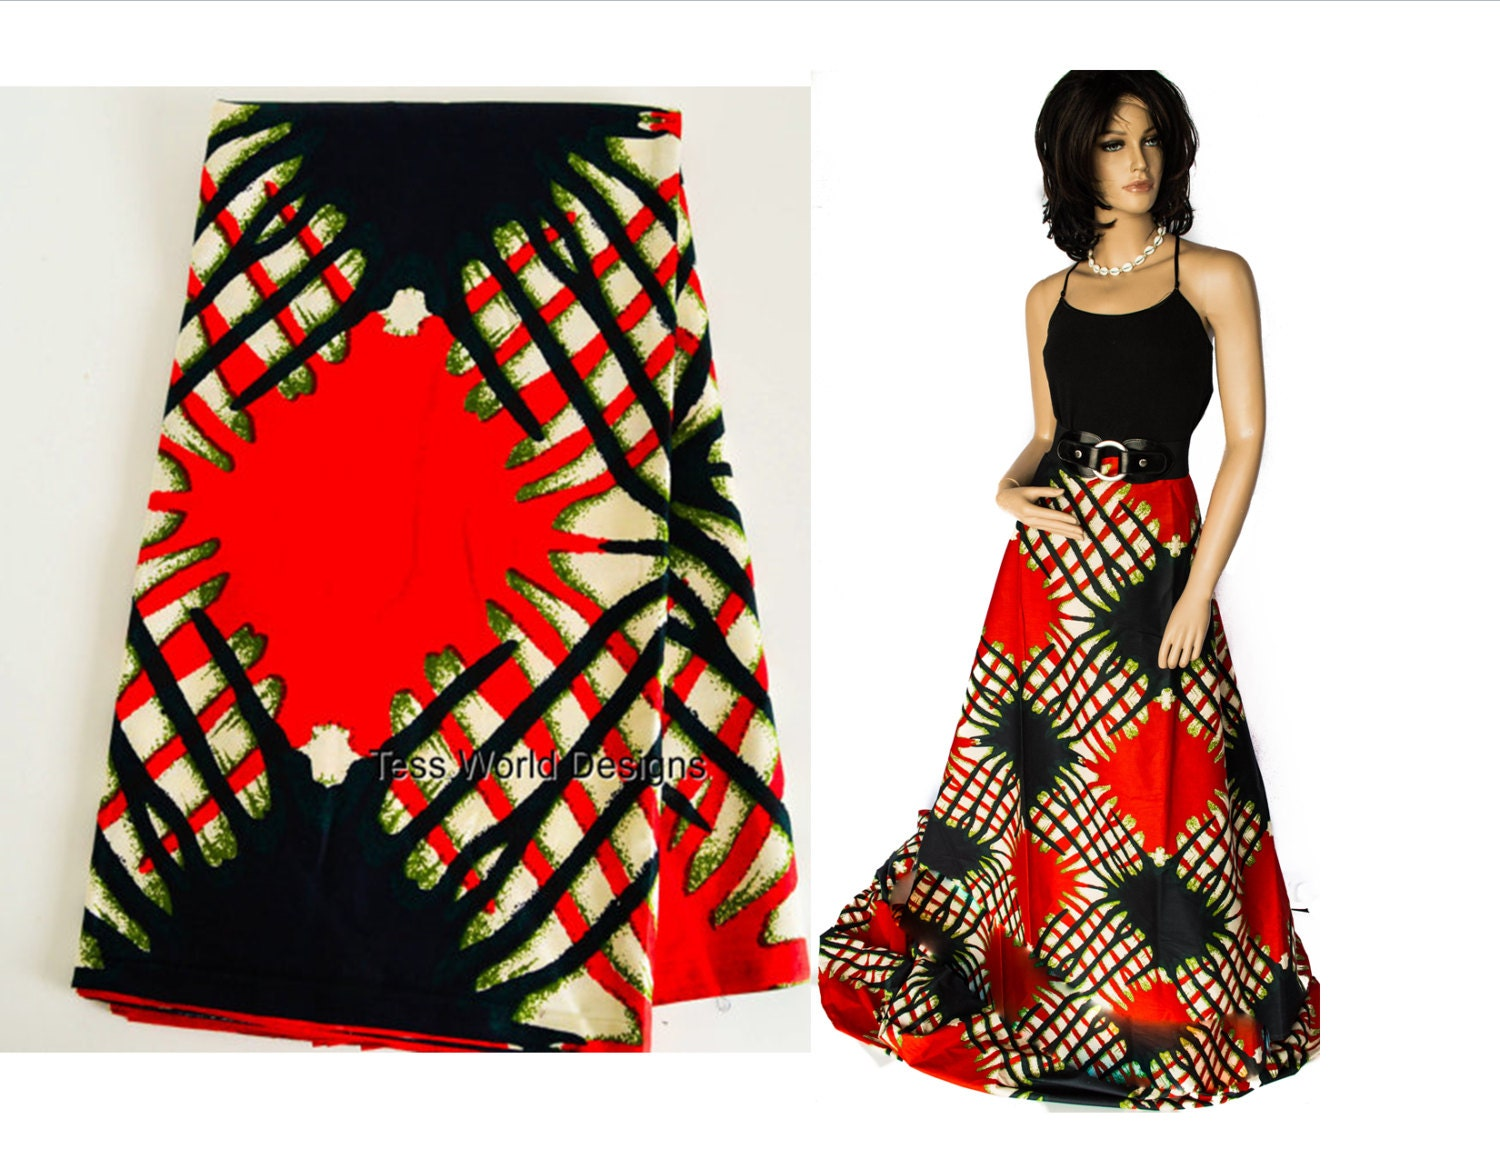 Wholesale African Textiles Fabric From Africa Ethnic Clothing Supplies Red Olive Green 6 Yards WP697